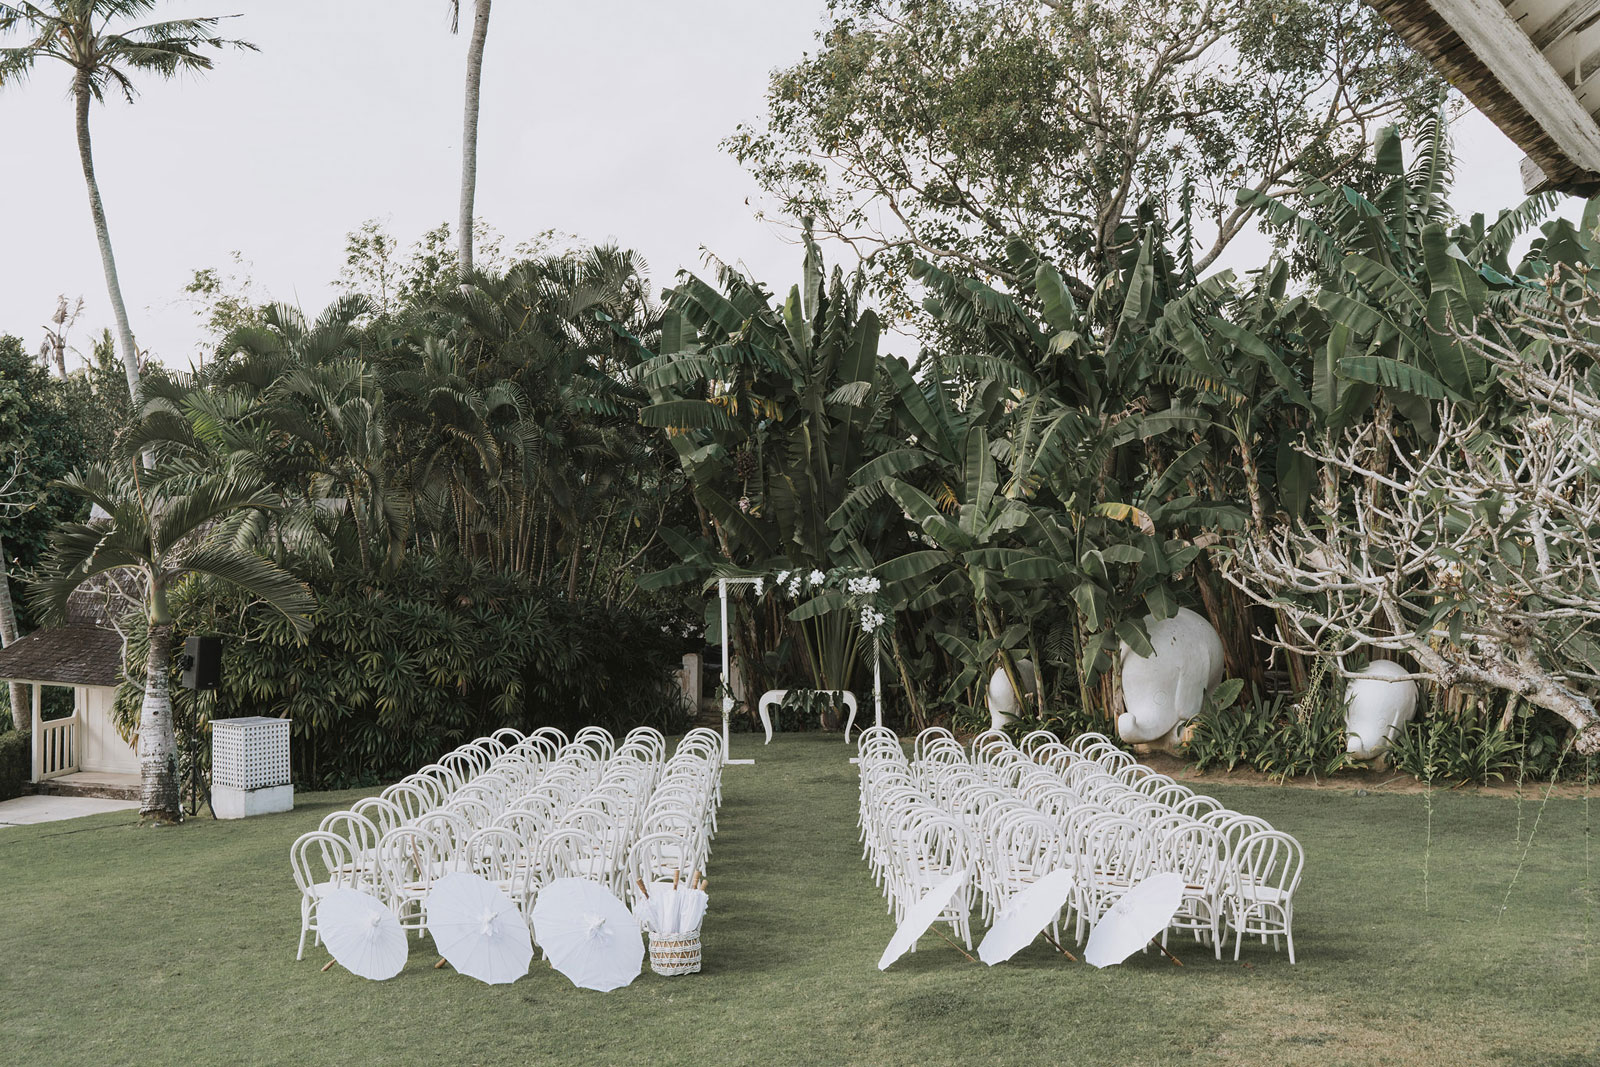 newfound-t-k-canggu-bali-ubud-wedding-photographer-290